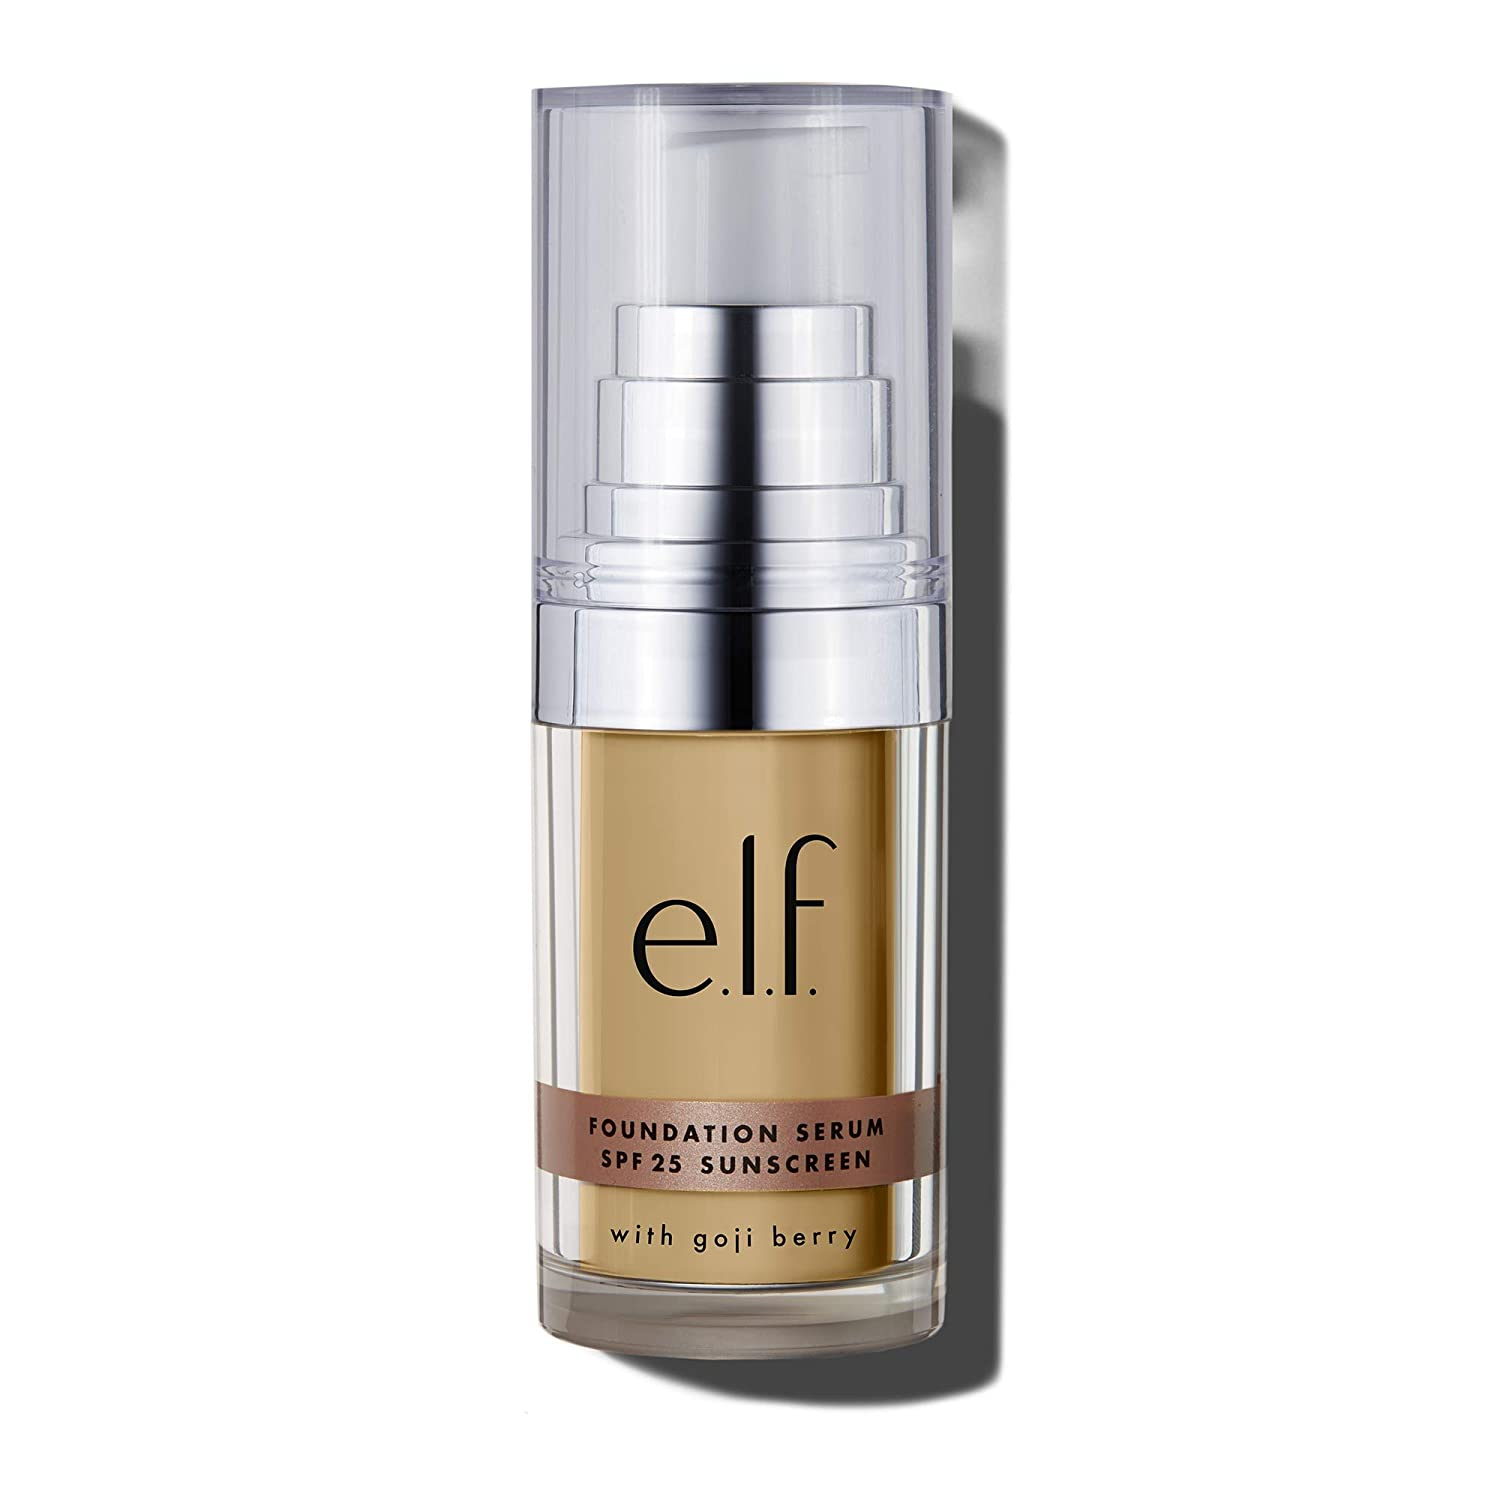 e.l.f, Beautifully Bare Foundation Serum SPF 25, Luminous, Lightweight, Sheer Coverage, Minimizes Pores & Fine Lines, Brightens, Restores, Light/Medium Dewy Finish, For All Skin Types, 0.47 Fl Oz